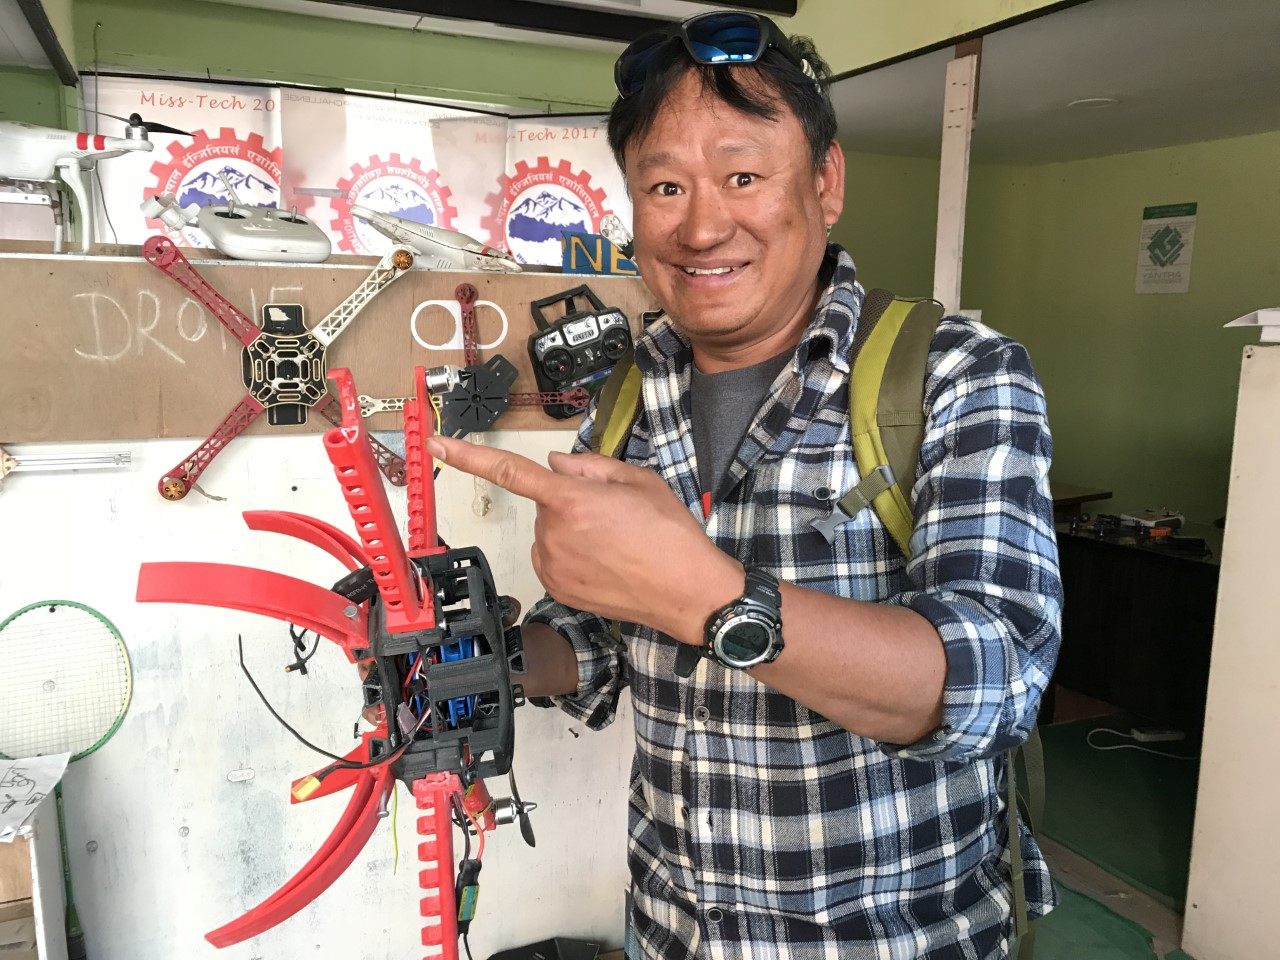 mck nepal 2017 ang with ultra high alt drone at kanjirowa.jpg